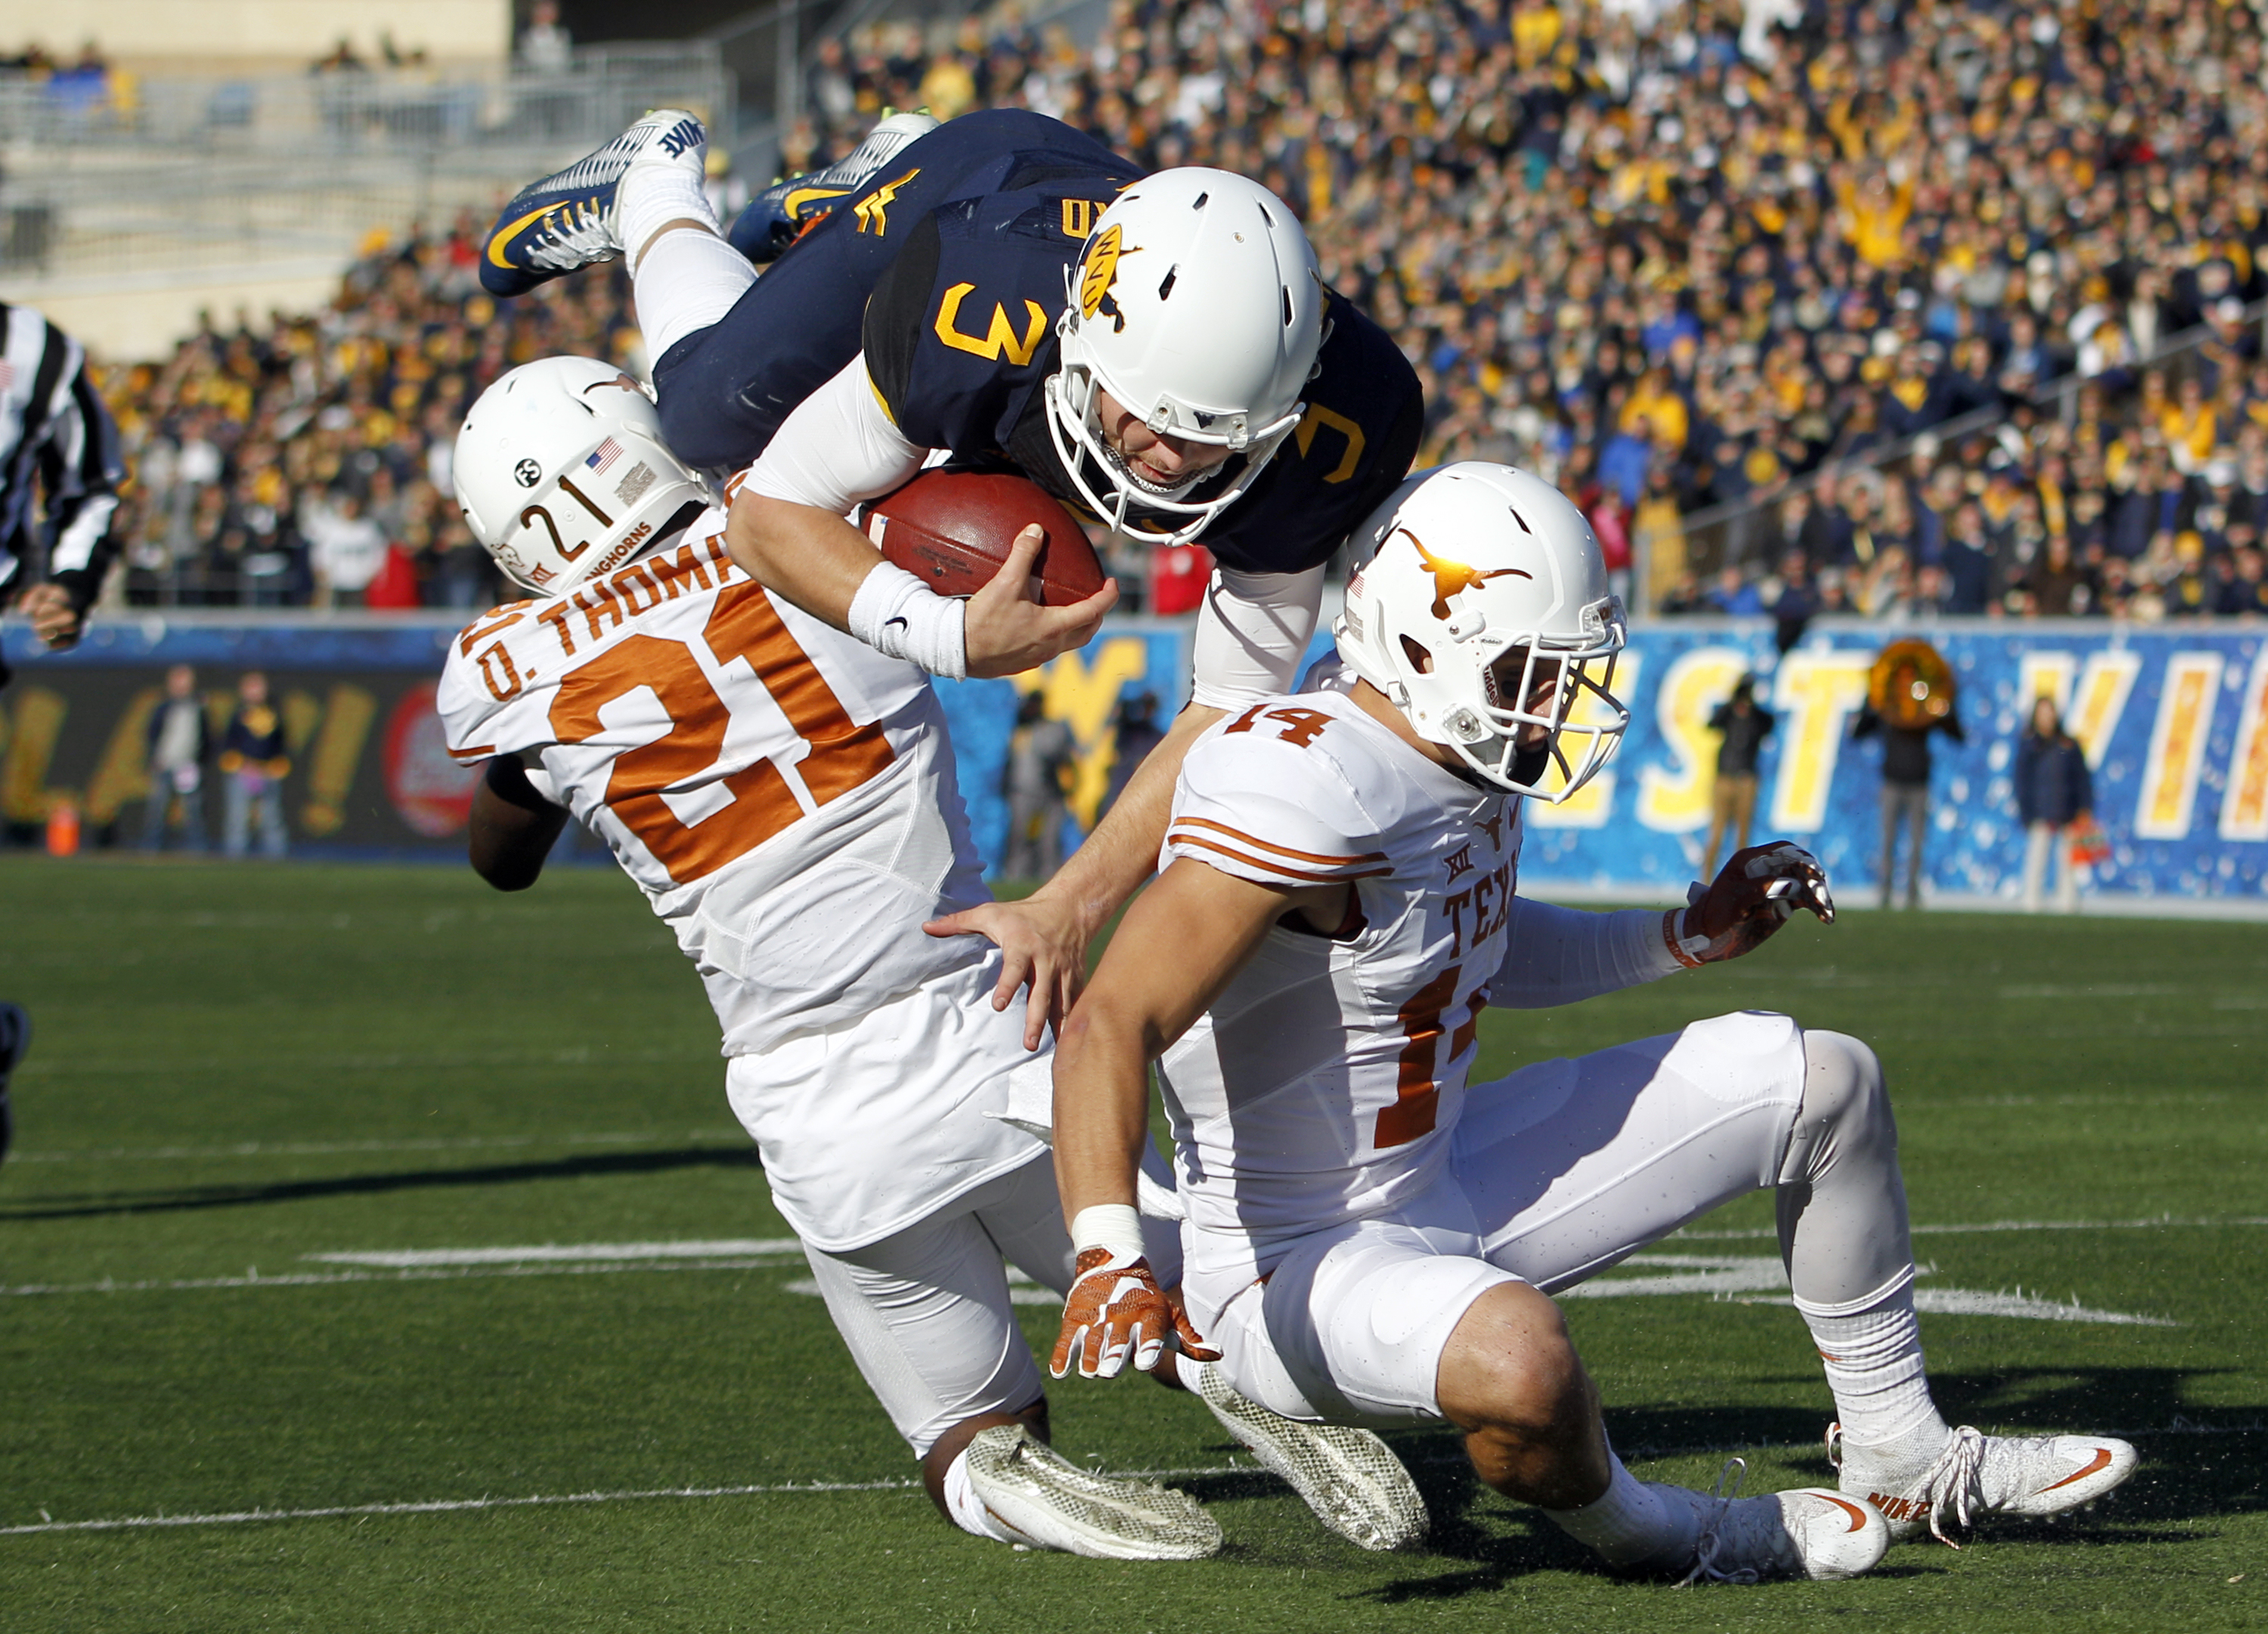 West Virginia QB Will Grier out several weeks